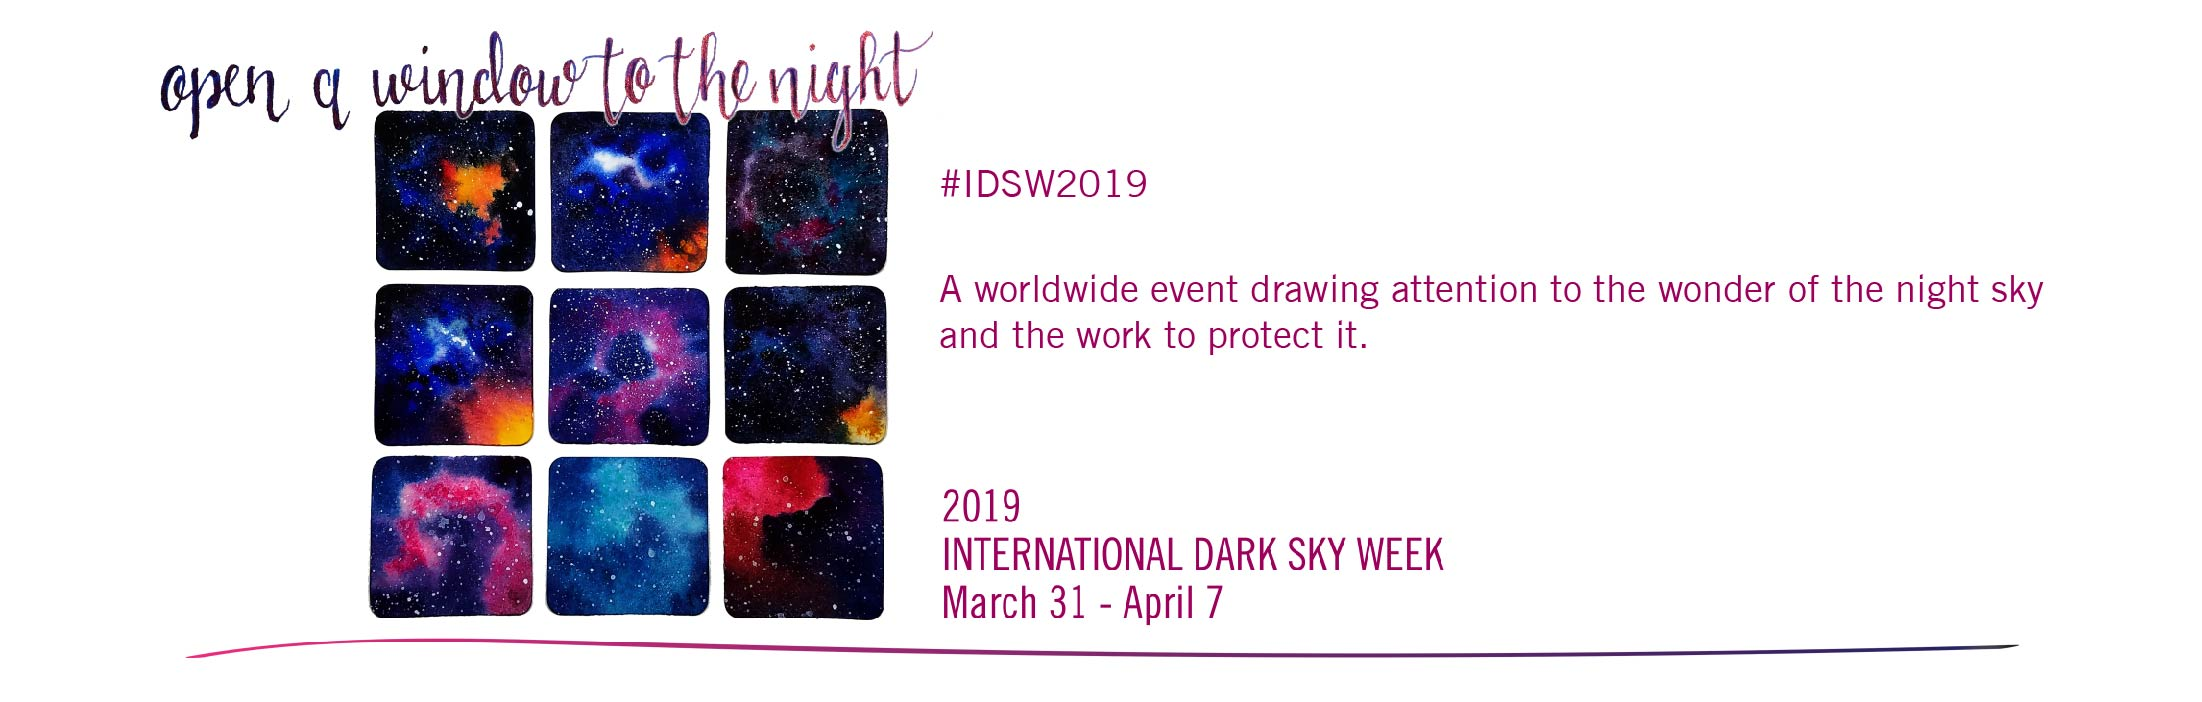 International Dark Sky Week 2019 IDSW2019 IDA